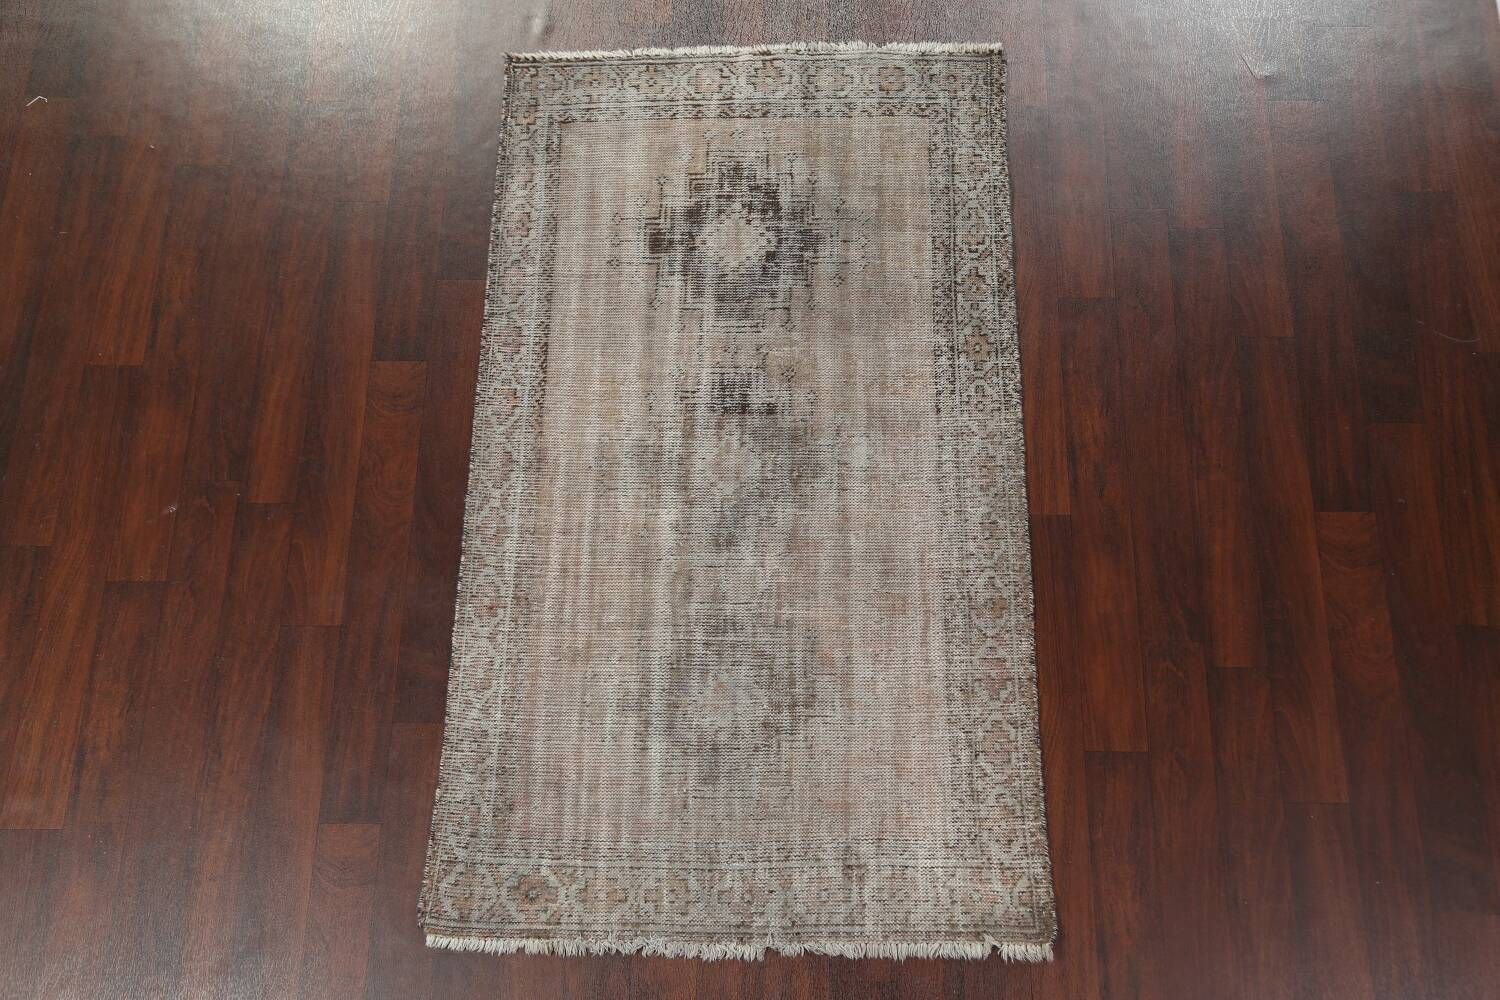 Antique Distressed Balouch Persian Area Rug 4x7 image 13